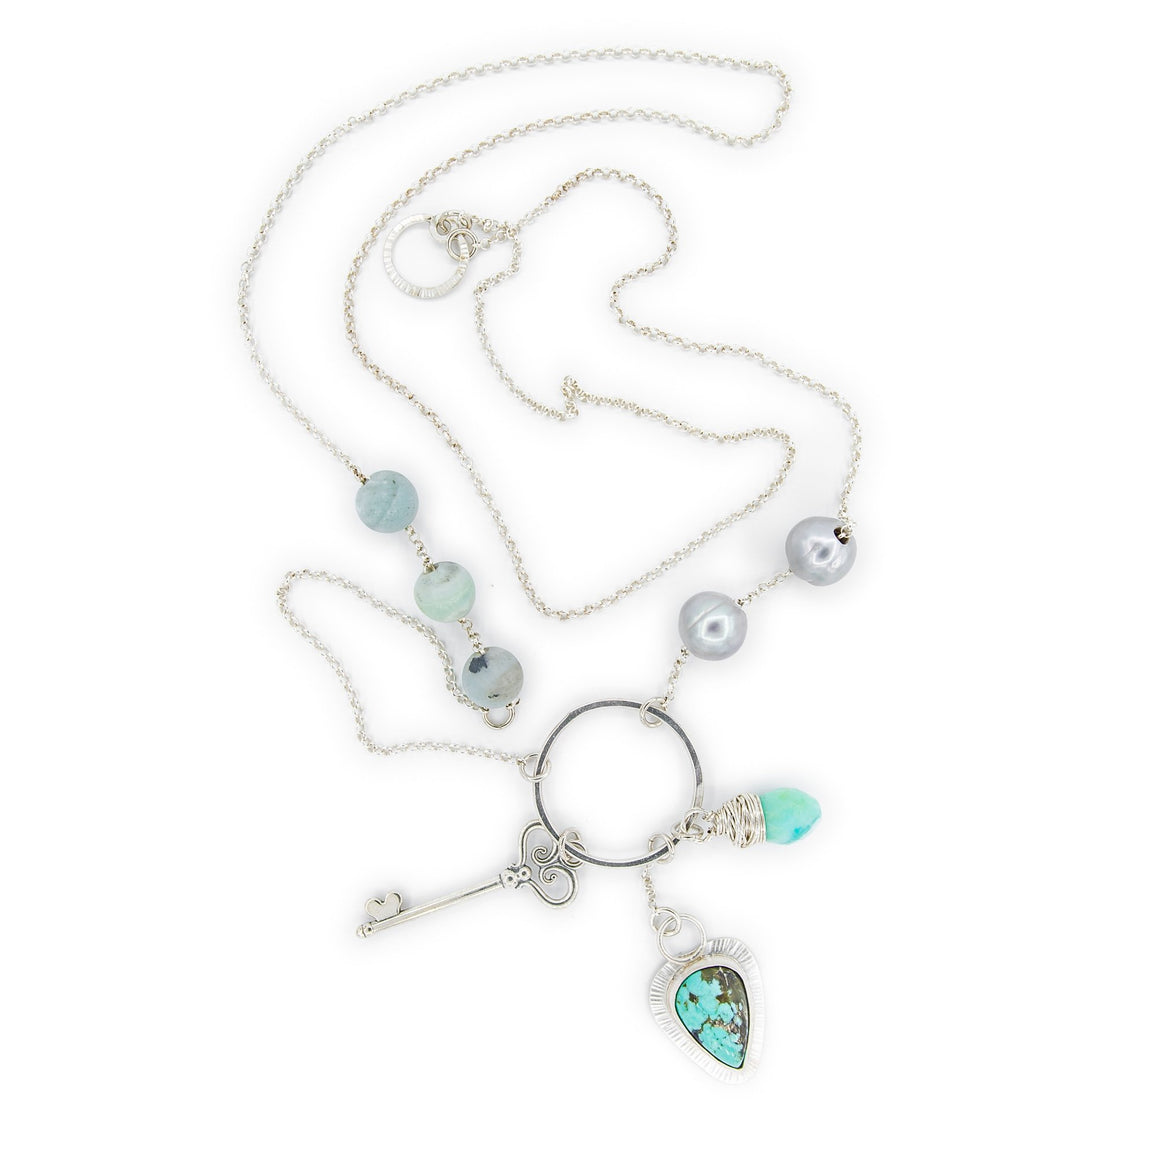 Turquoise Charm Necklace by Original Sin Jewelry